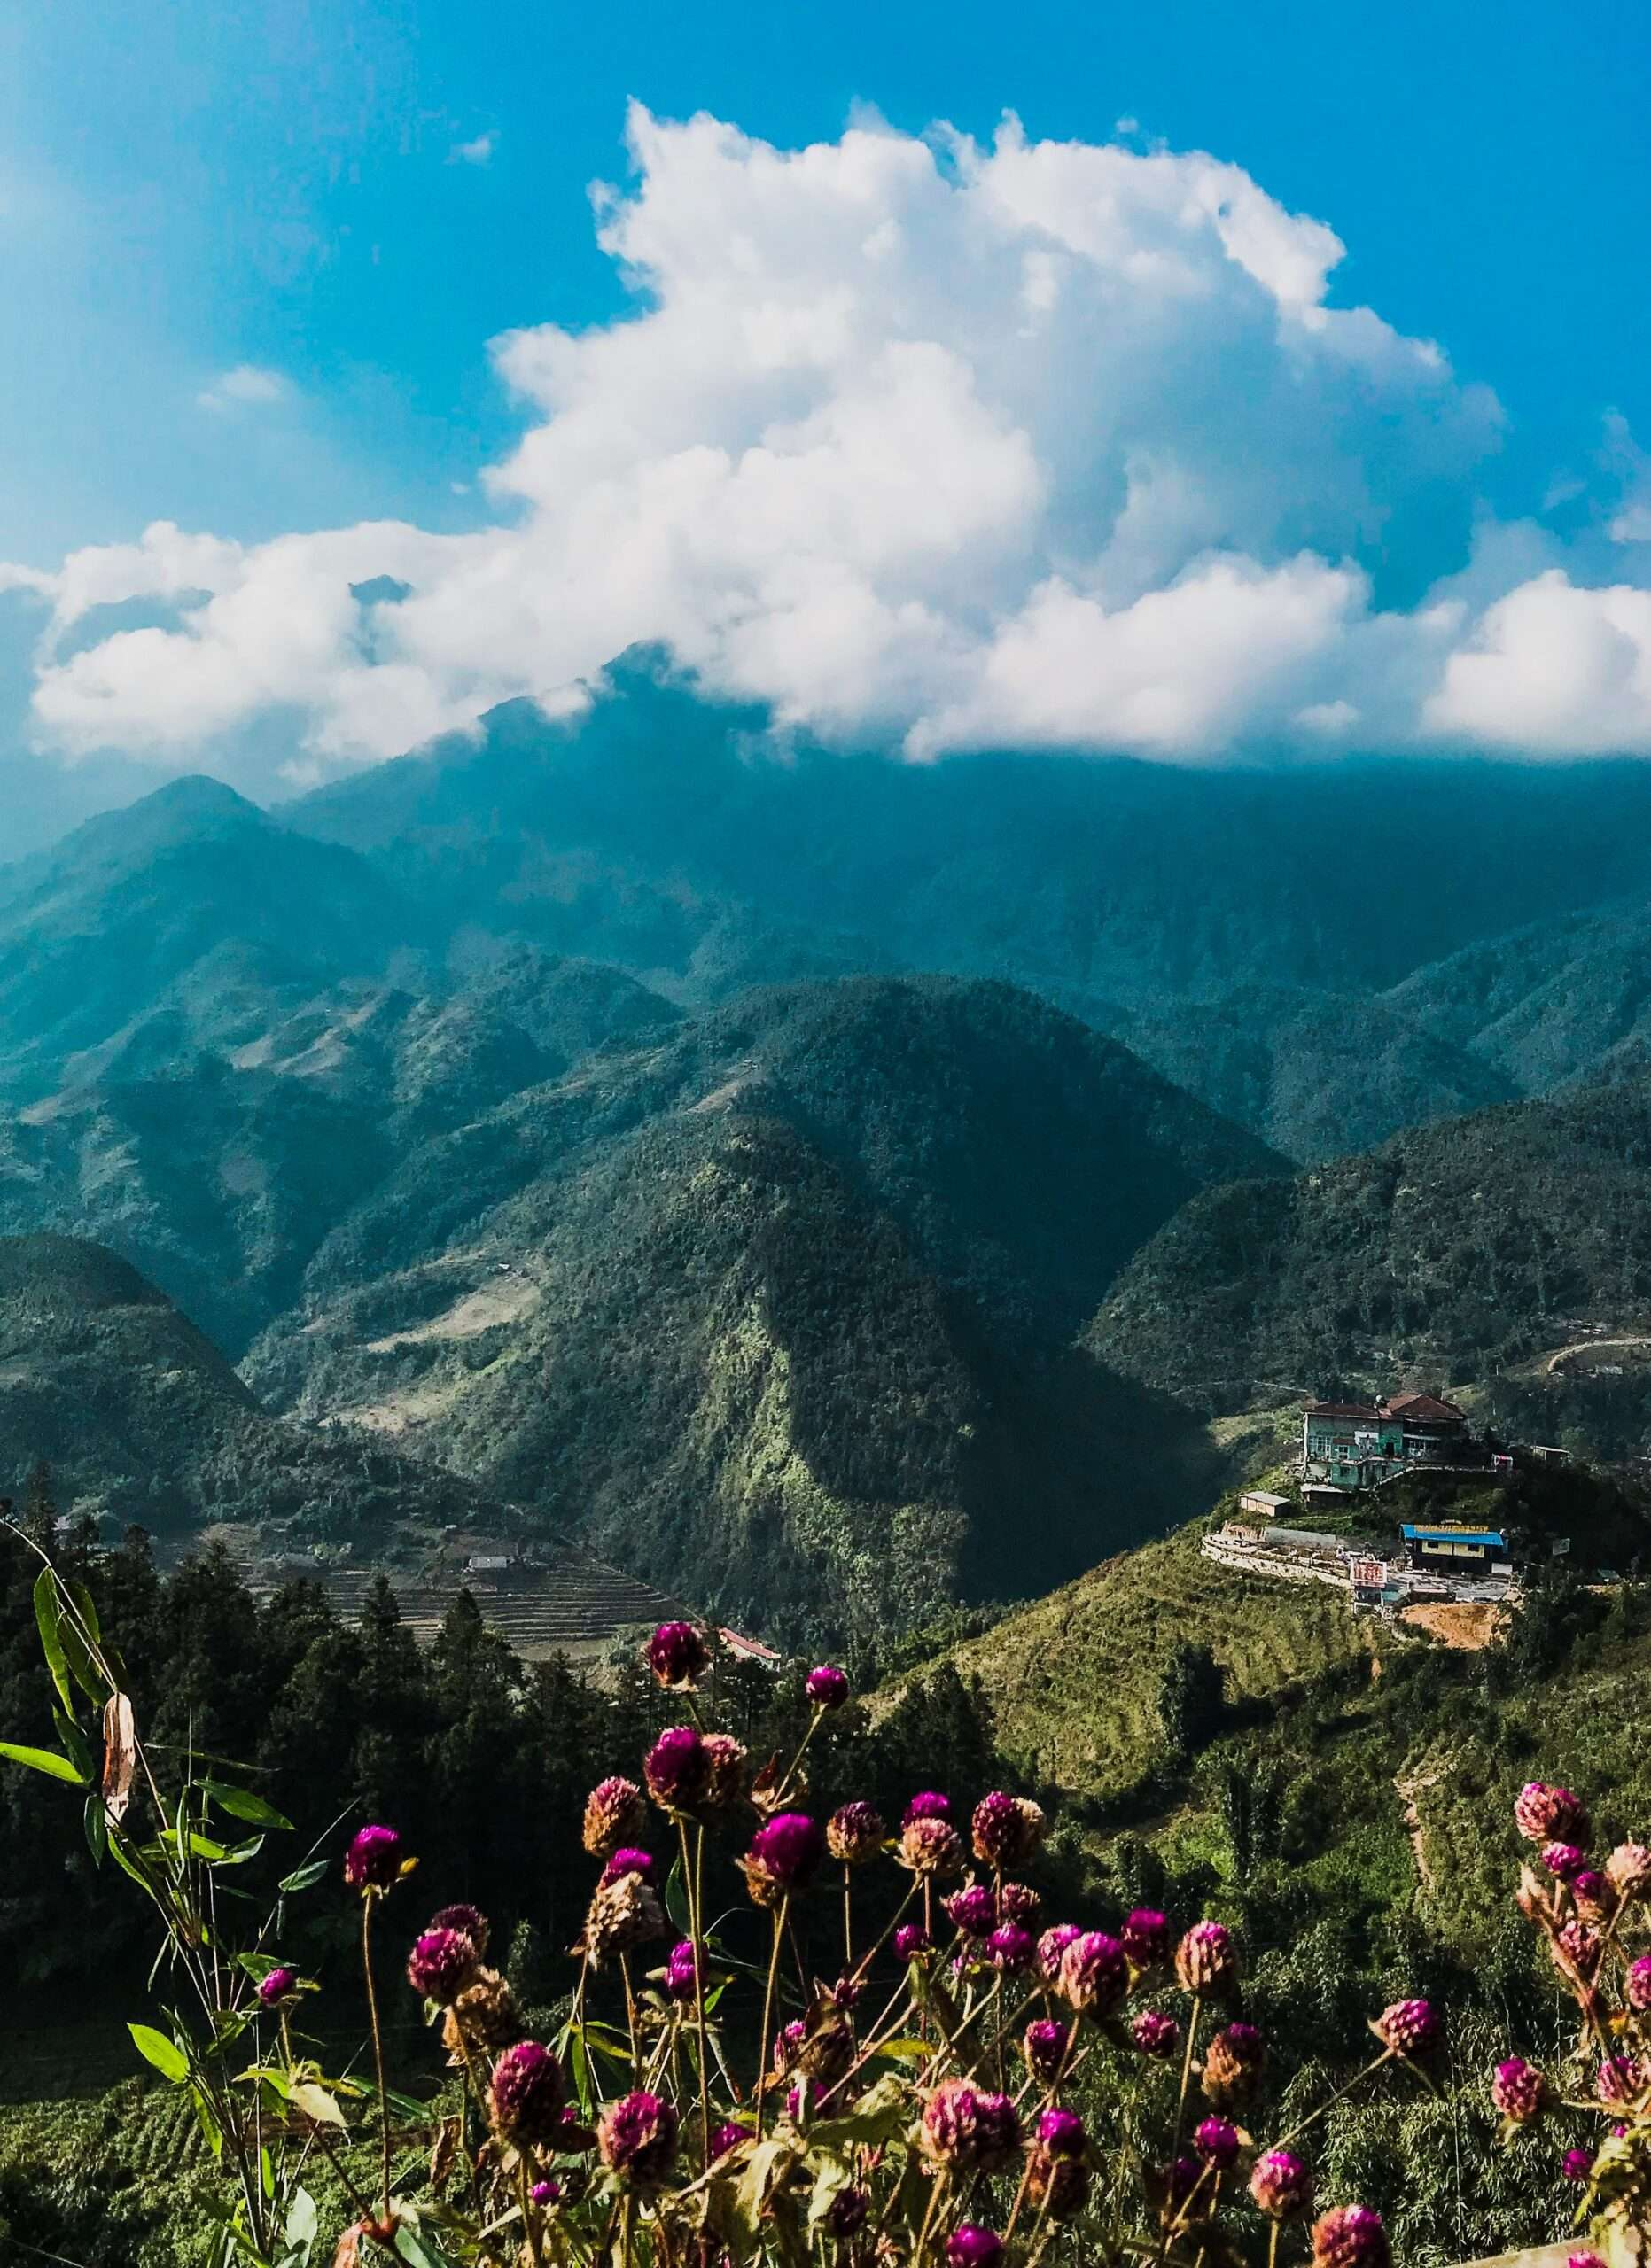 mountains covered in green rice paddies, location for trekking in Sapa